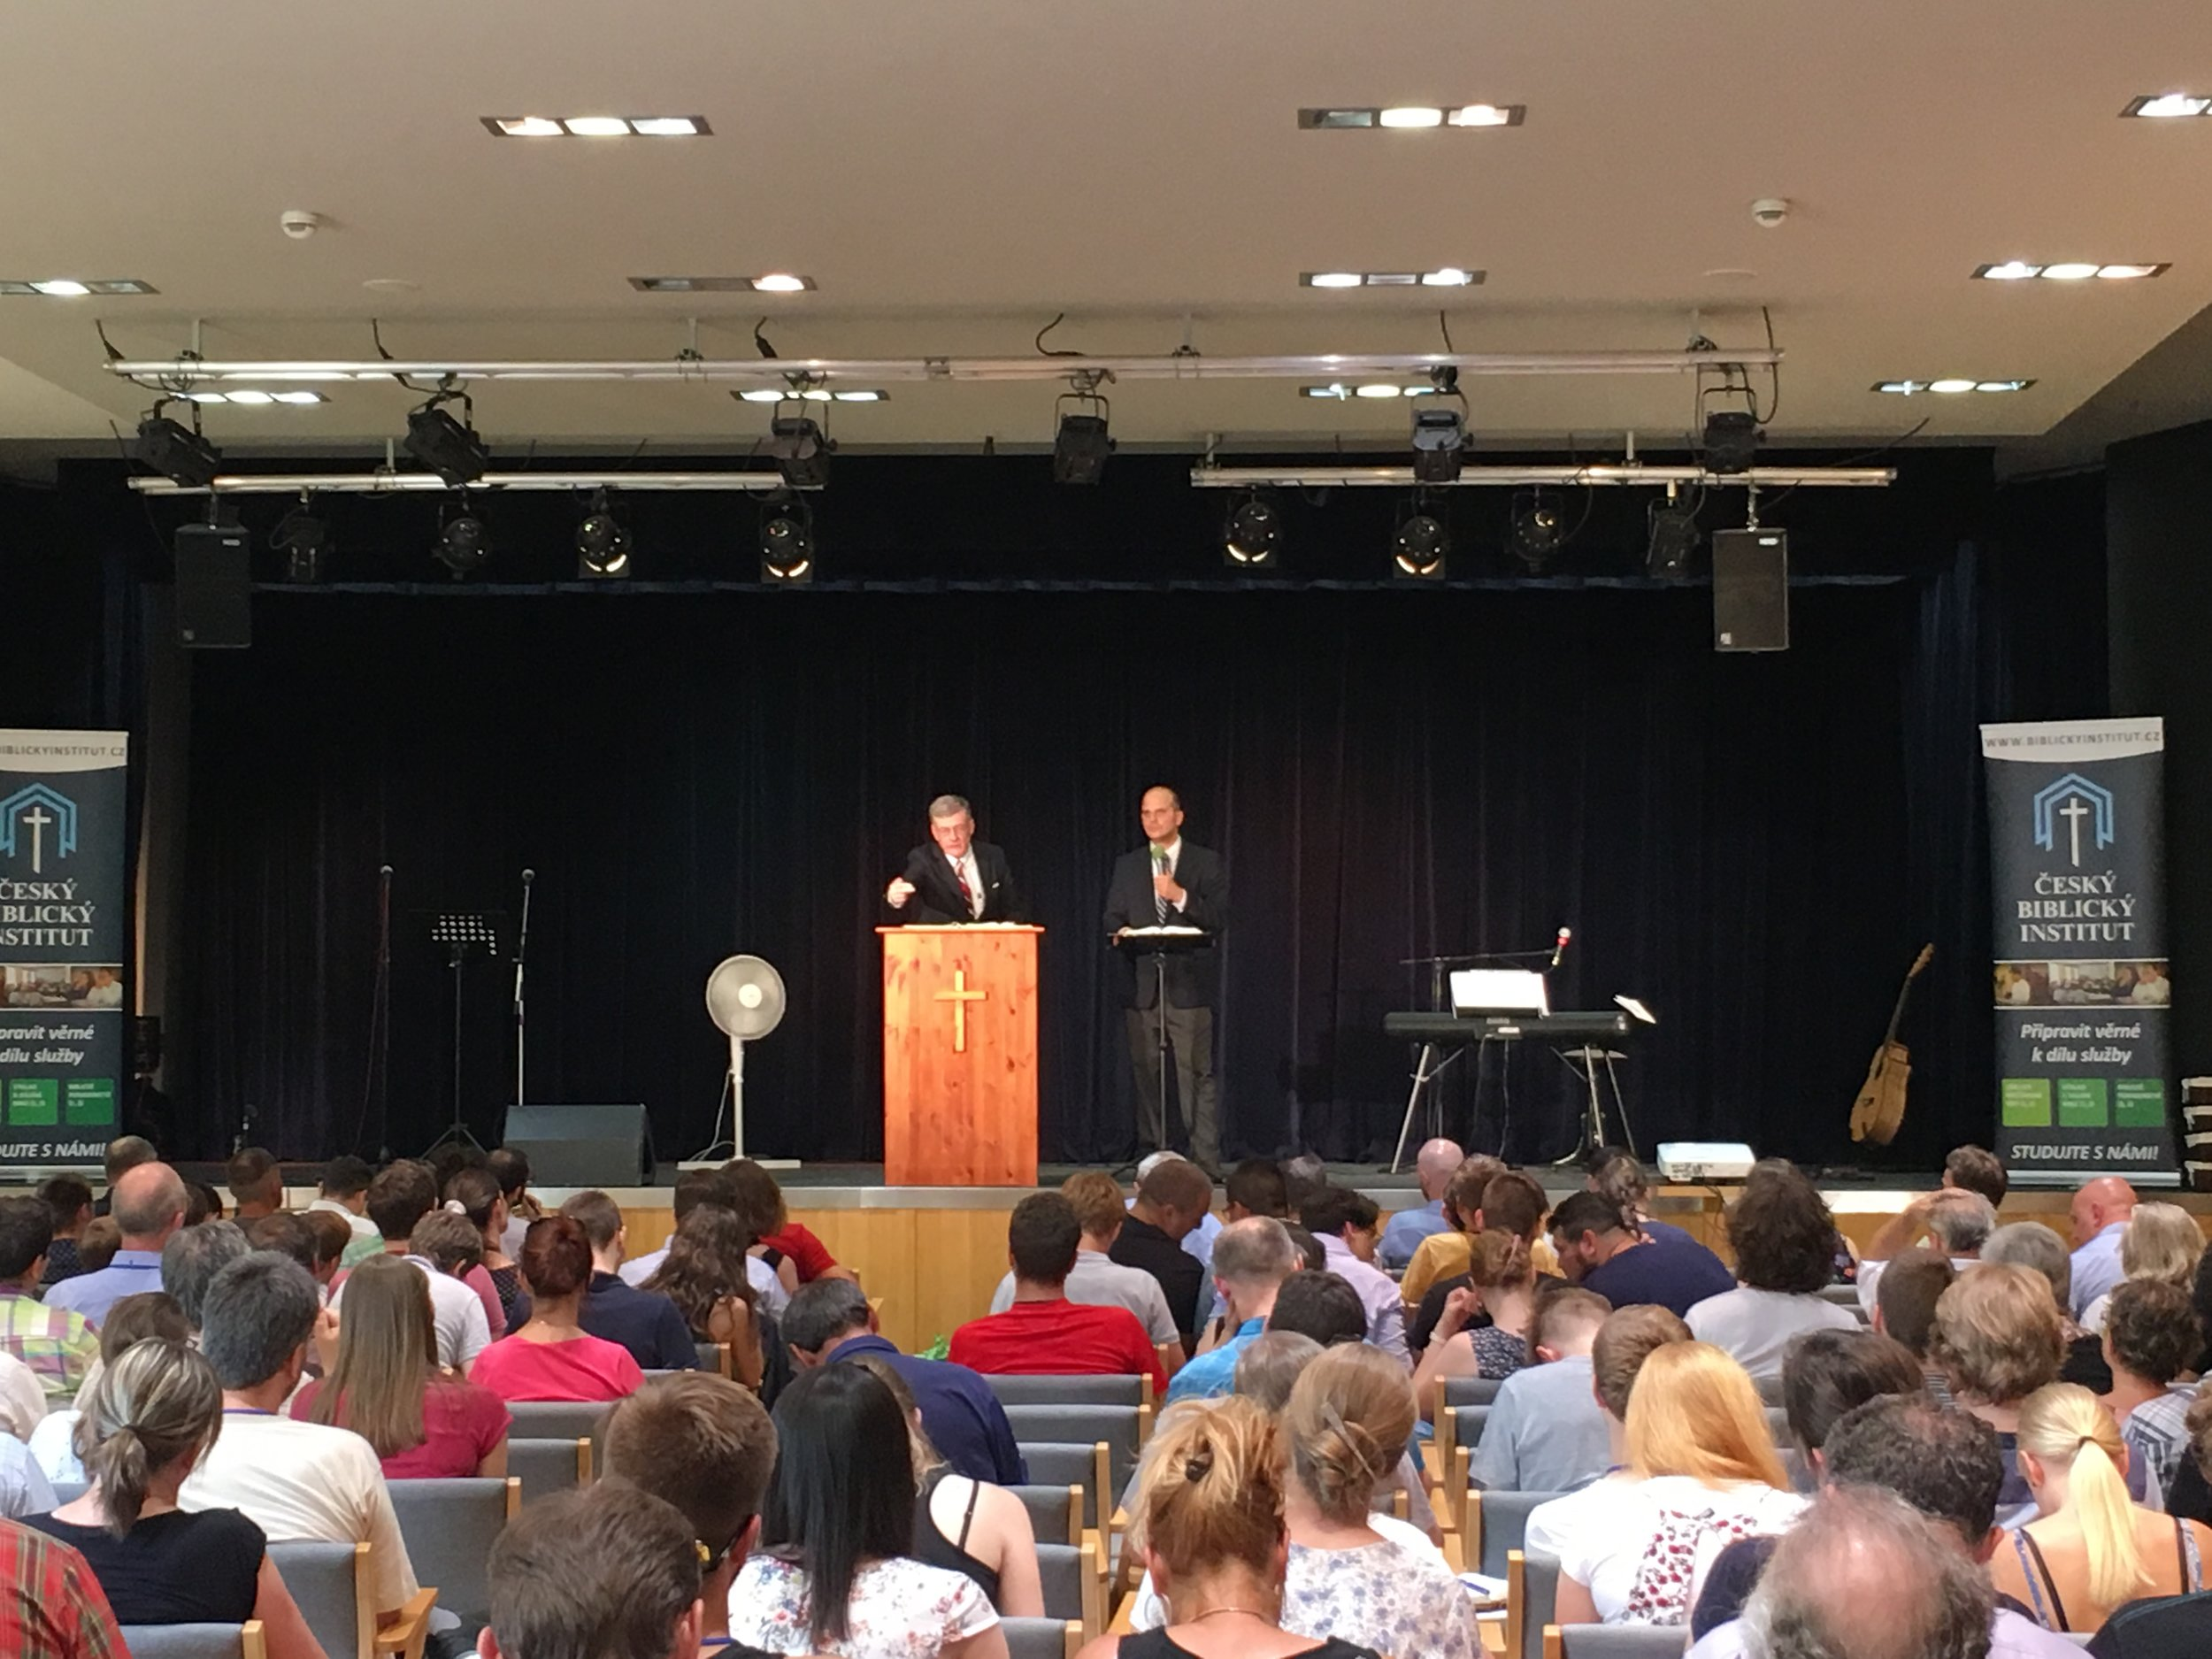 We went to meet a potential church planting family in Kroměřiž, and ran into a conference with Steve Lawson.